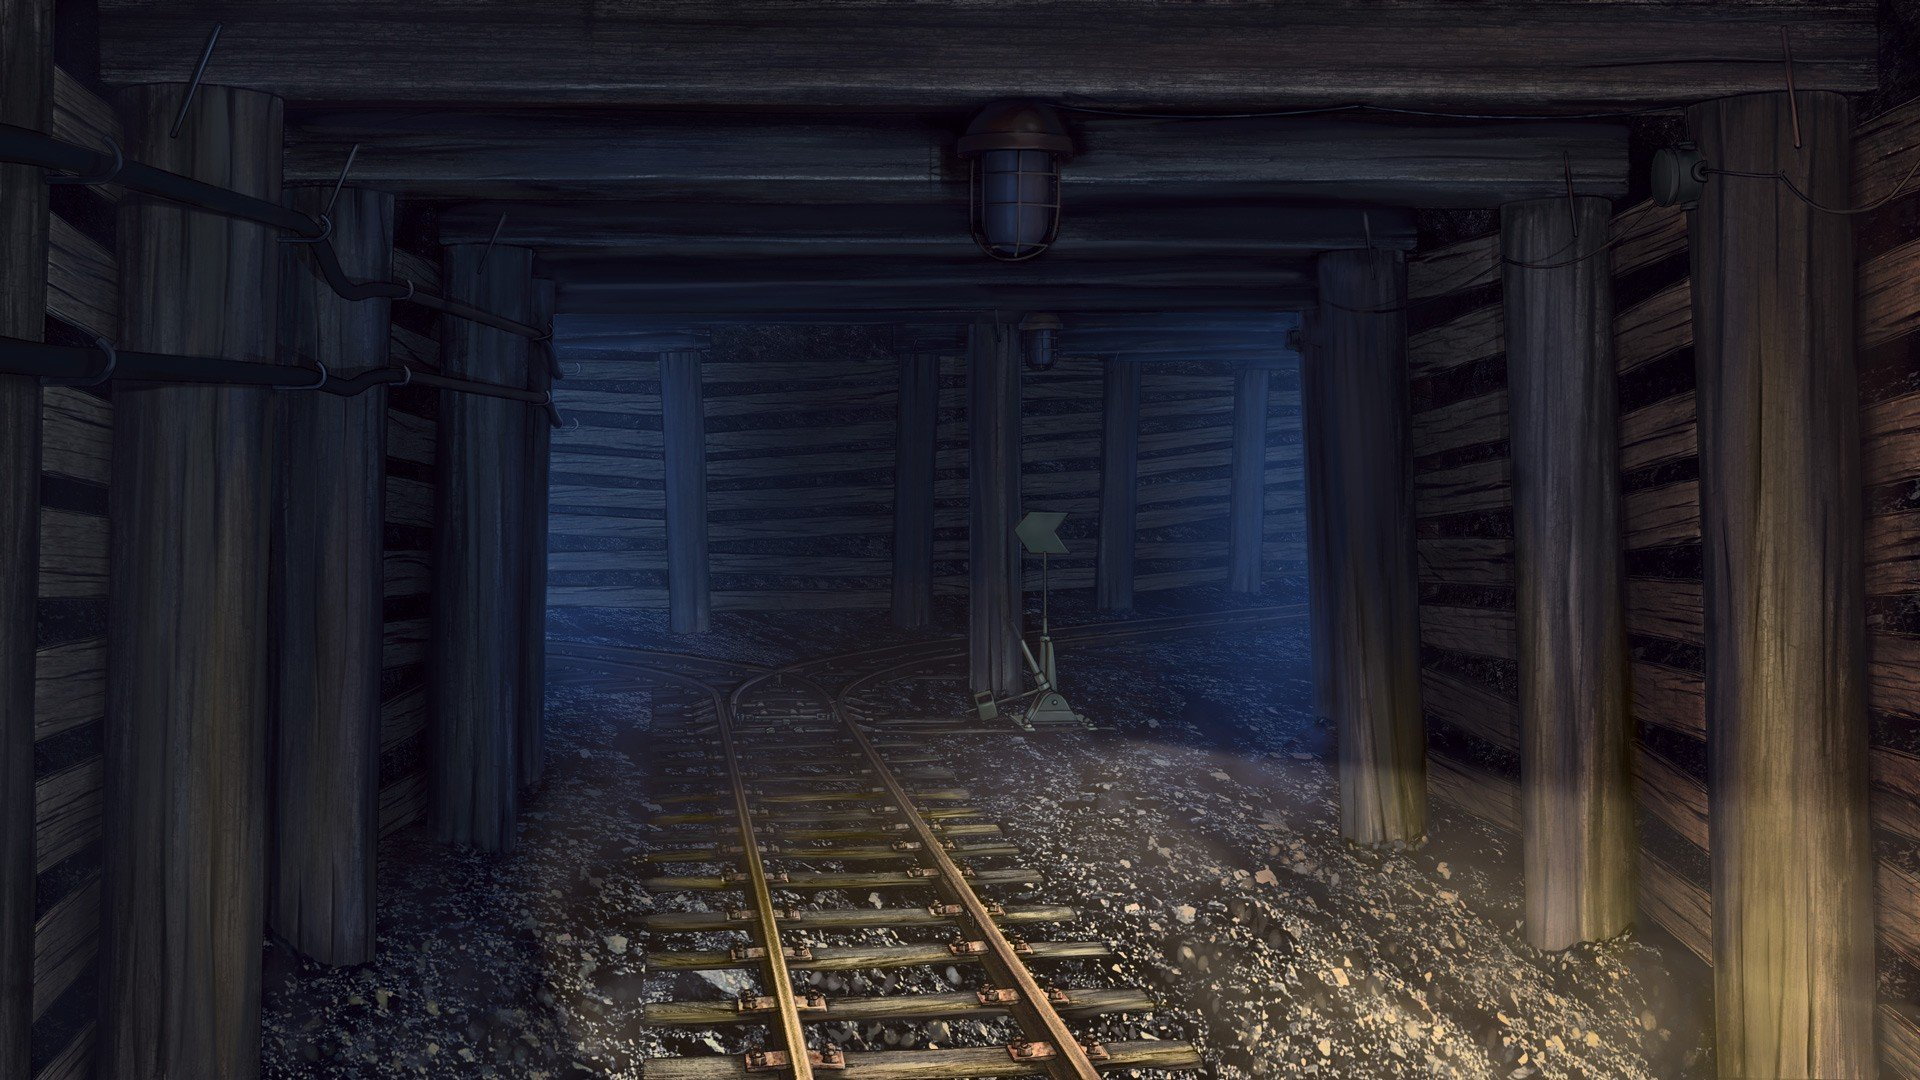 Mine shaft everlasting summer hd wallpapers desktop and mobile images photos - Mining images hd ...